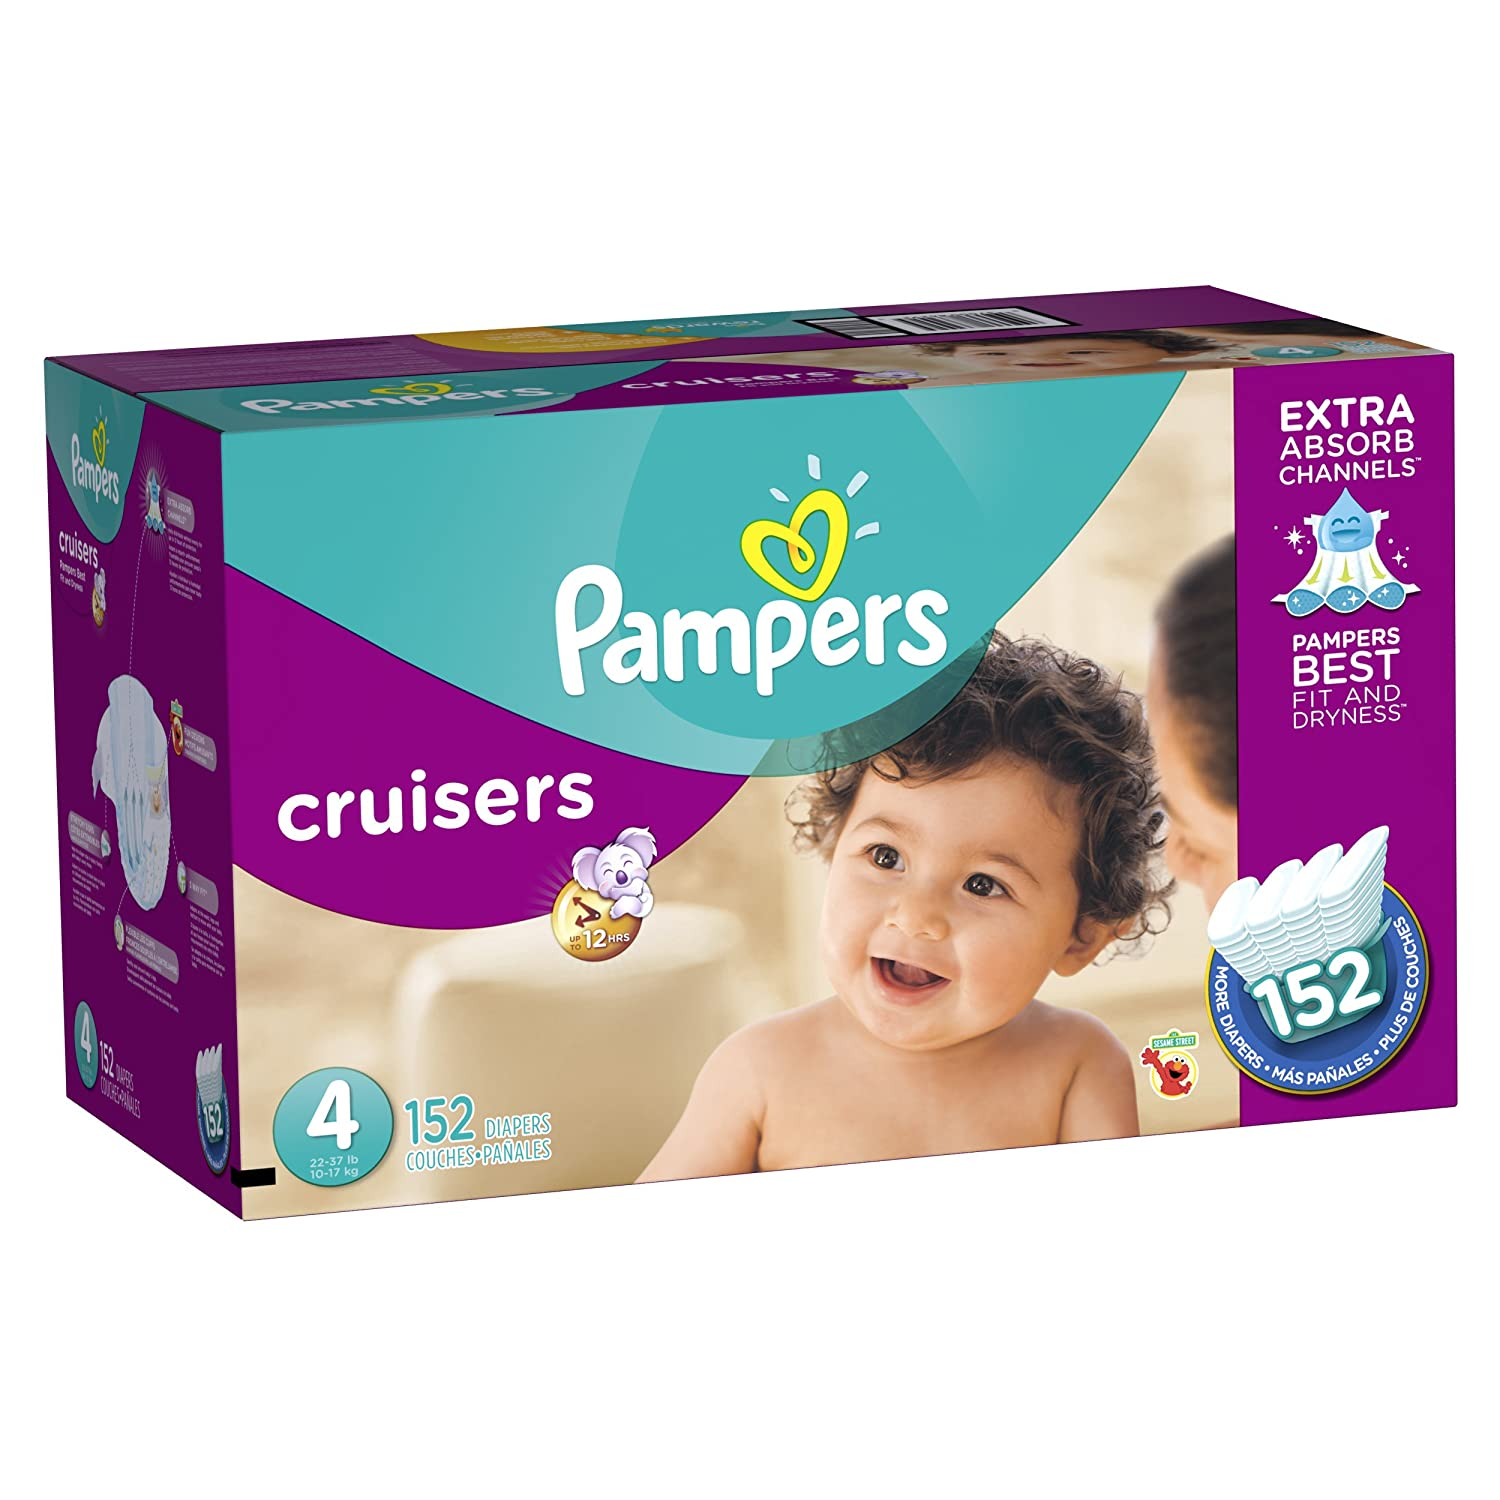 pampers cruisers diapers economy plus pack size 4 152 count baby furniture for less